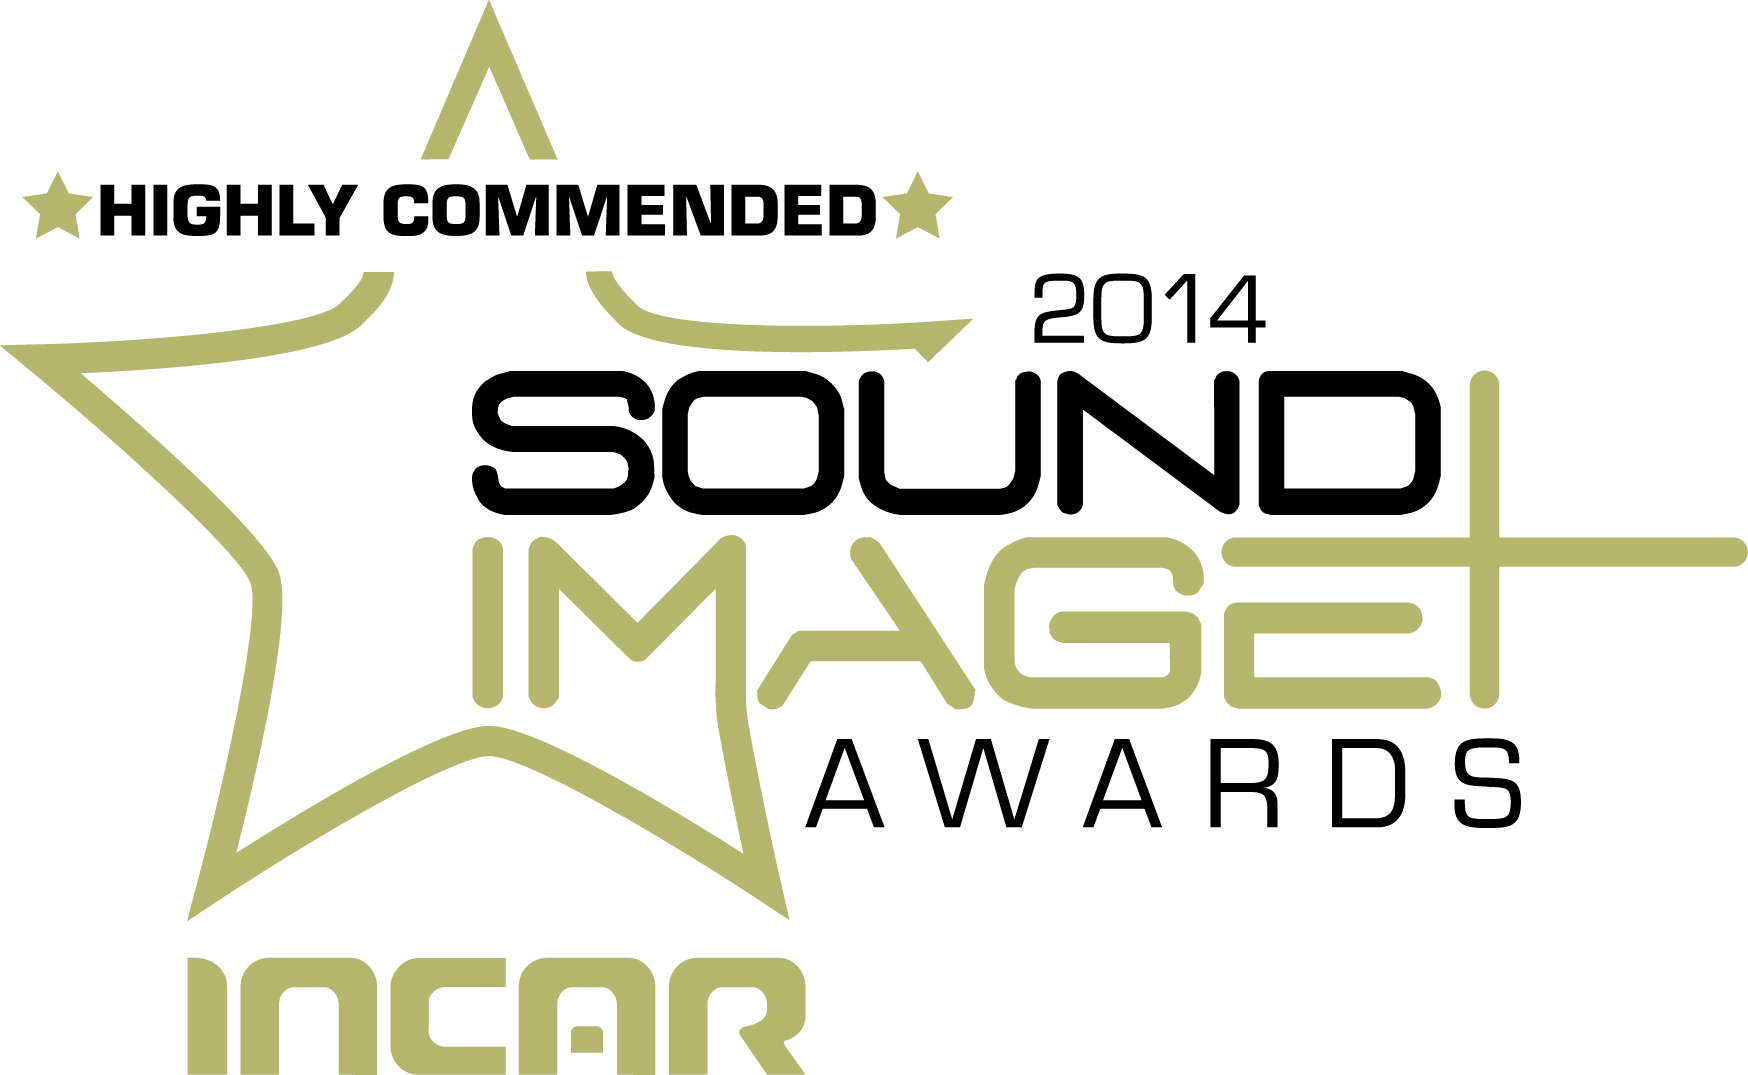 HighlyCommended2014_SI_Incar